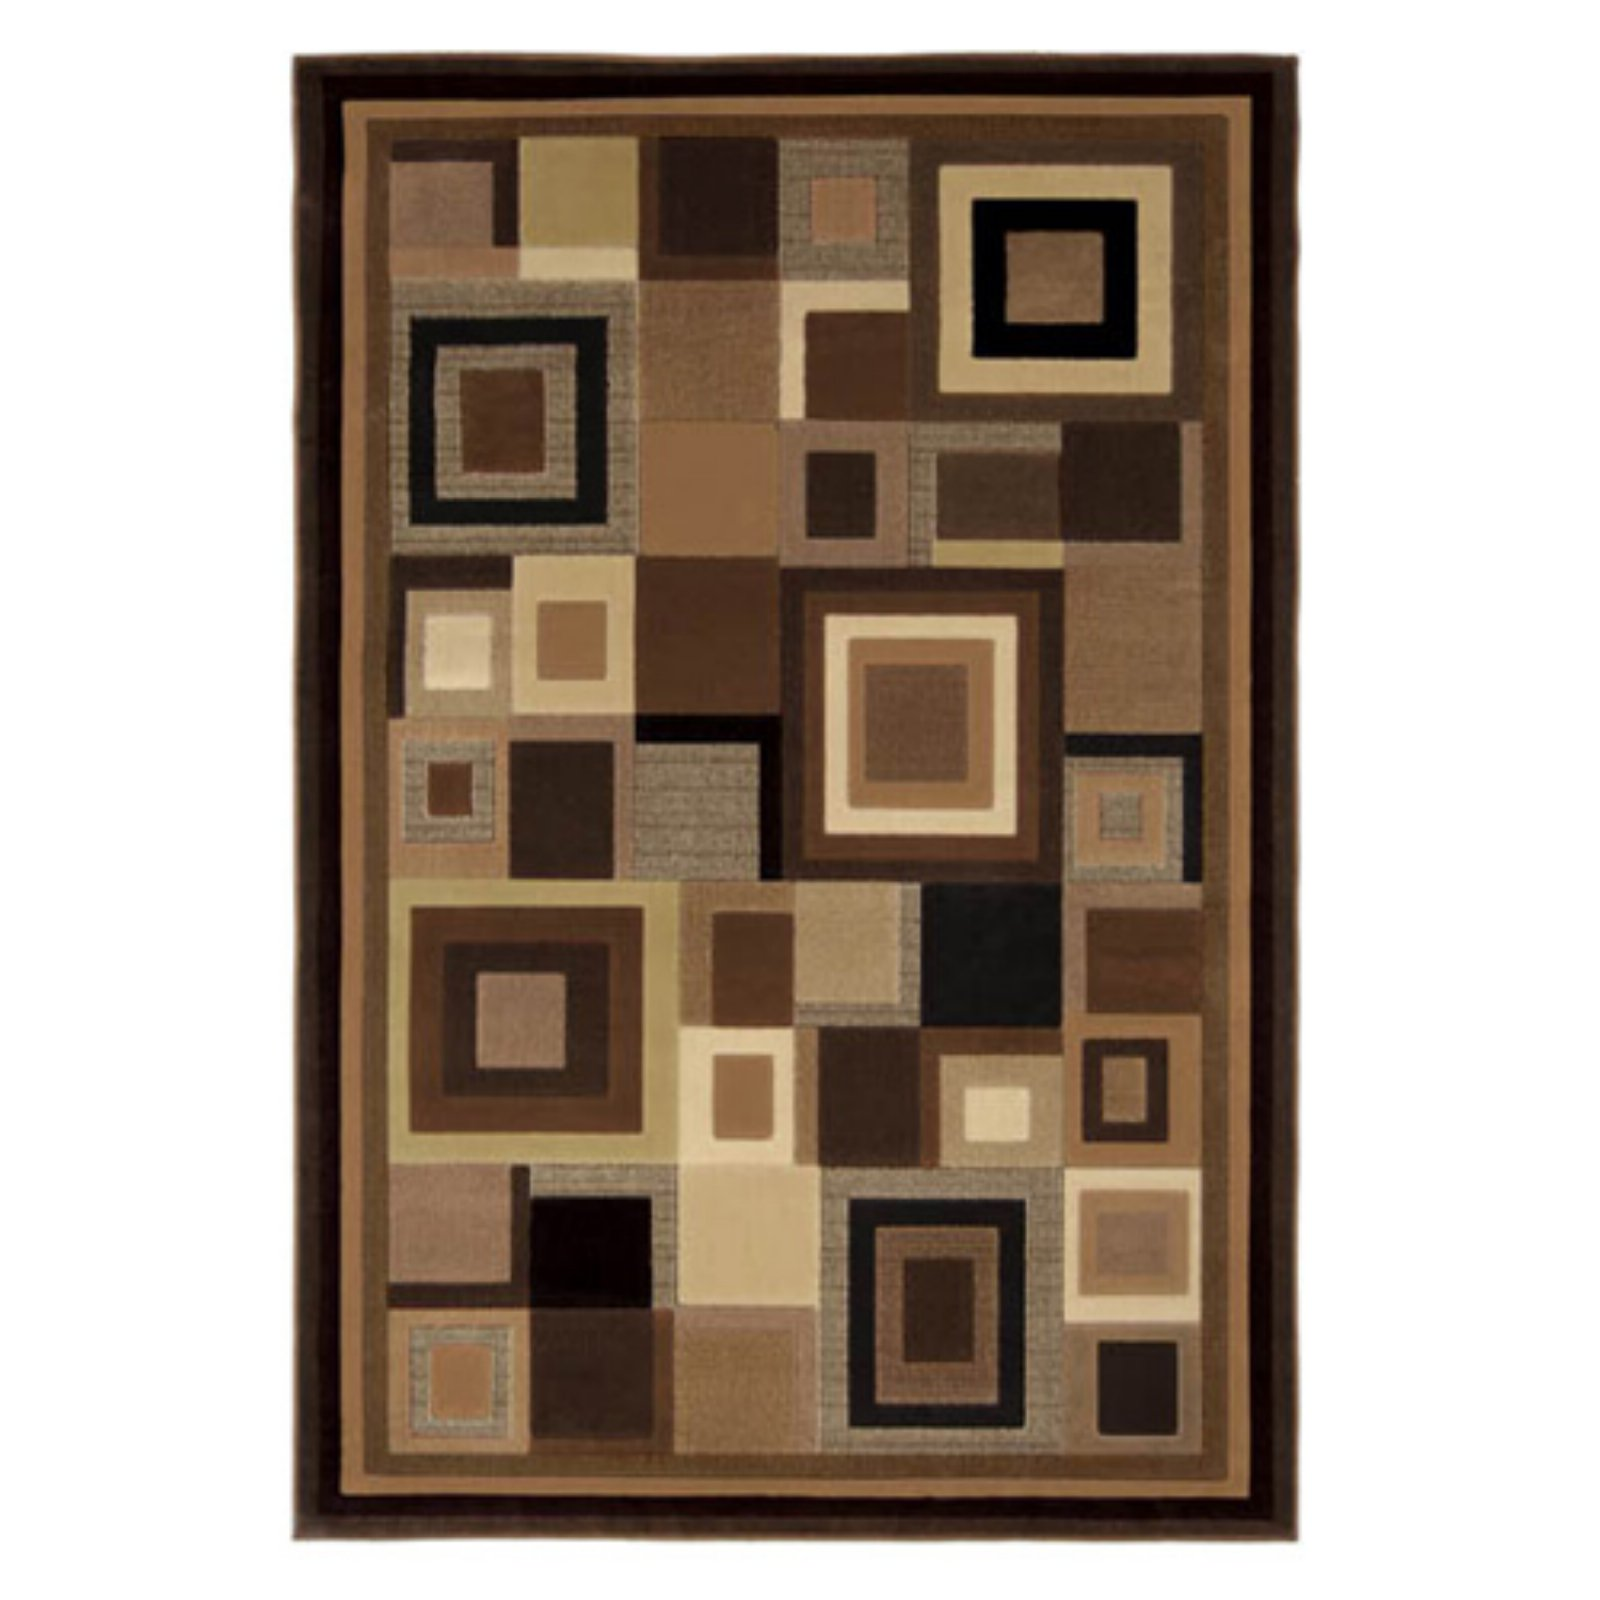 Home Dynamix Catalina Area Rugs - 4467-469 Geometric Squares Blocks Cubes Lines Rug